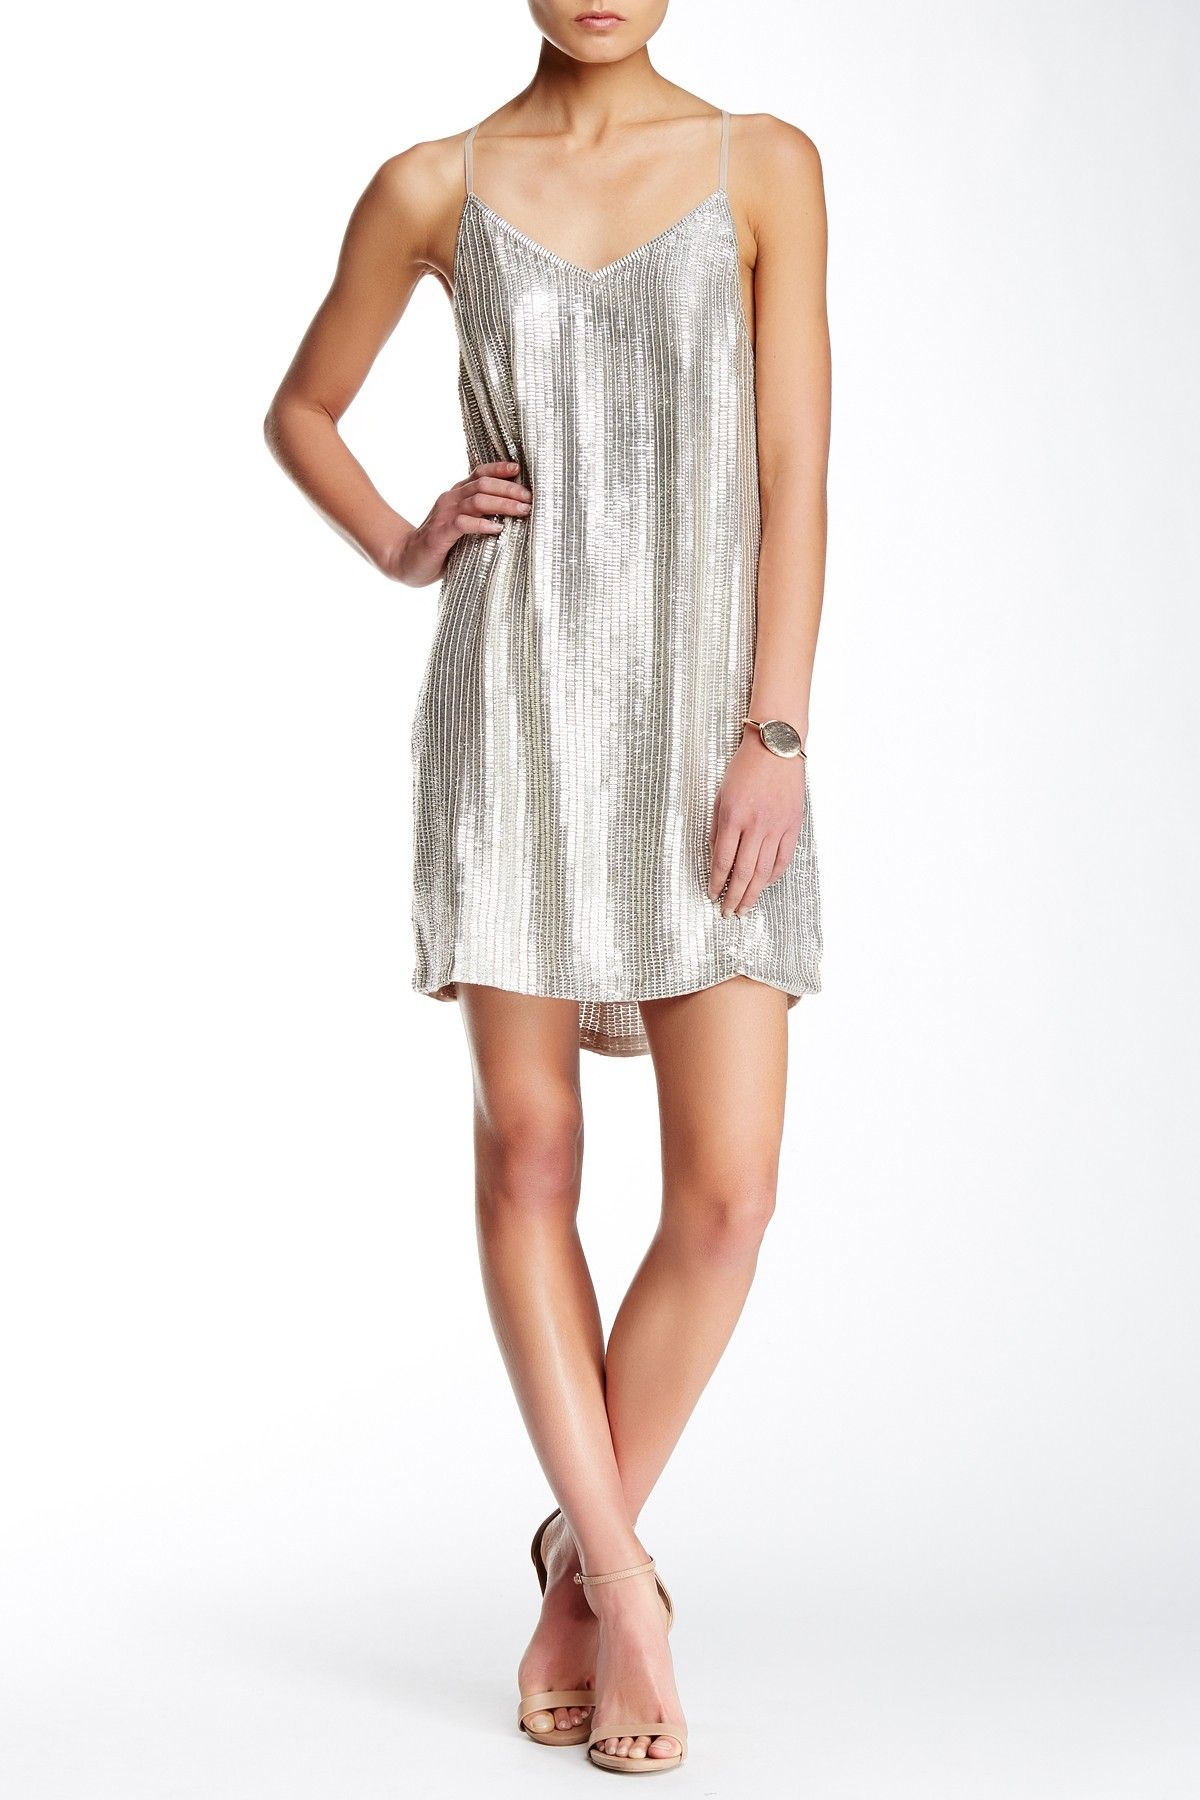 30a7dc7005a MLV - Noelle Metallic Sequin Dress at Nordstrom Rack. Free Shipping on  orders over  100.